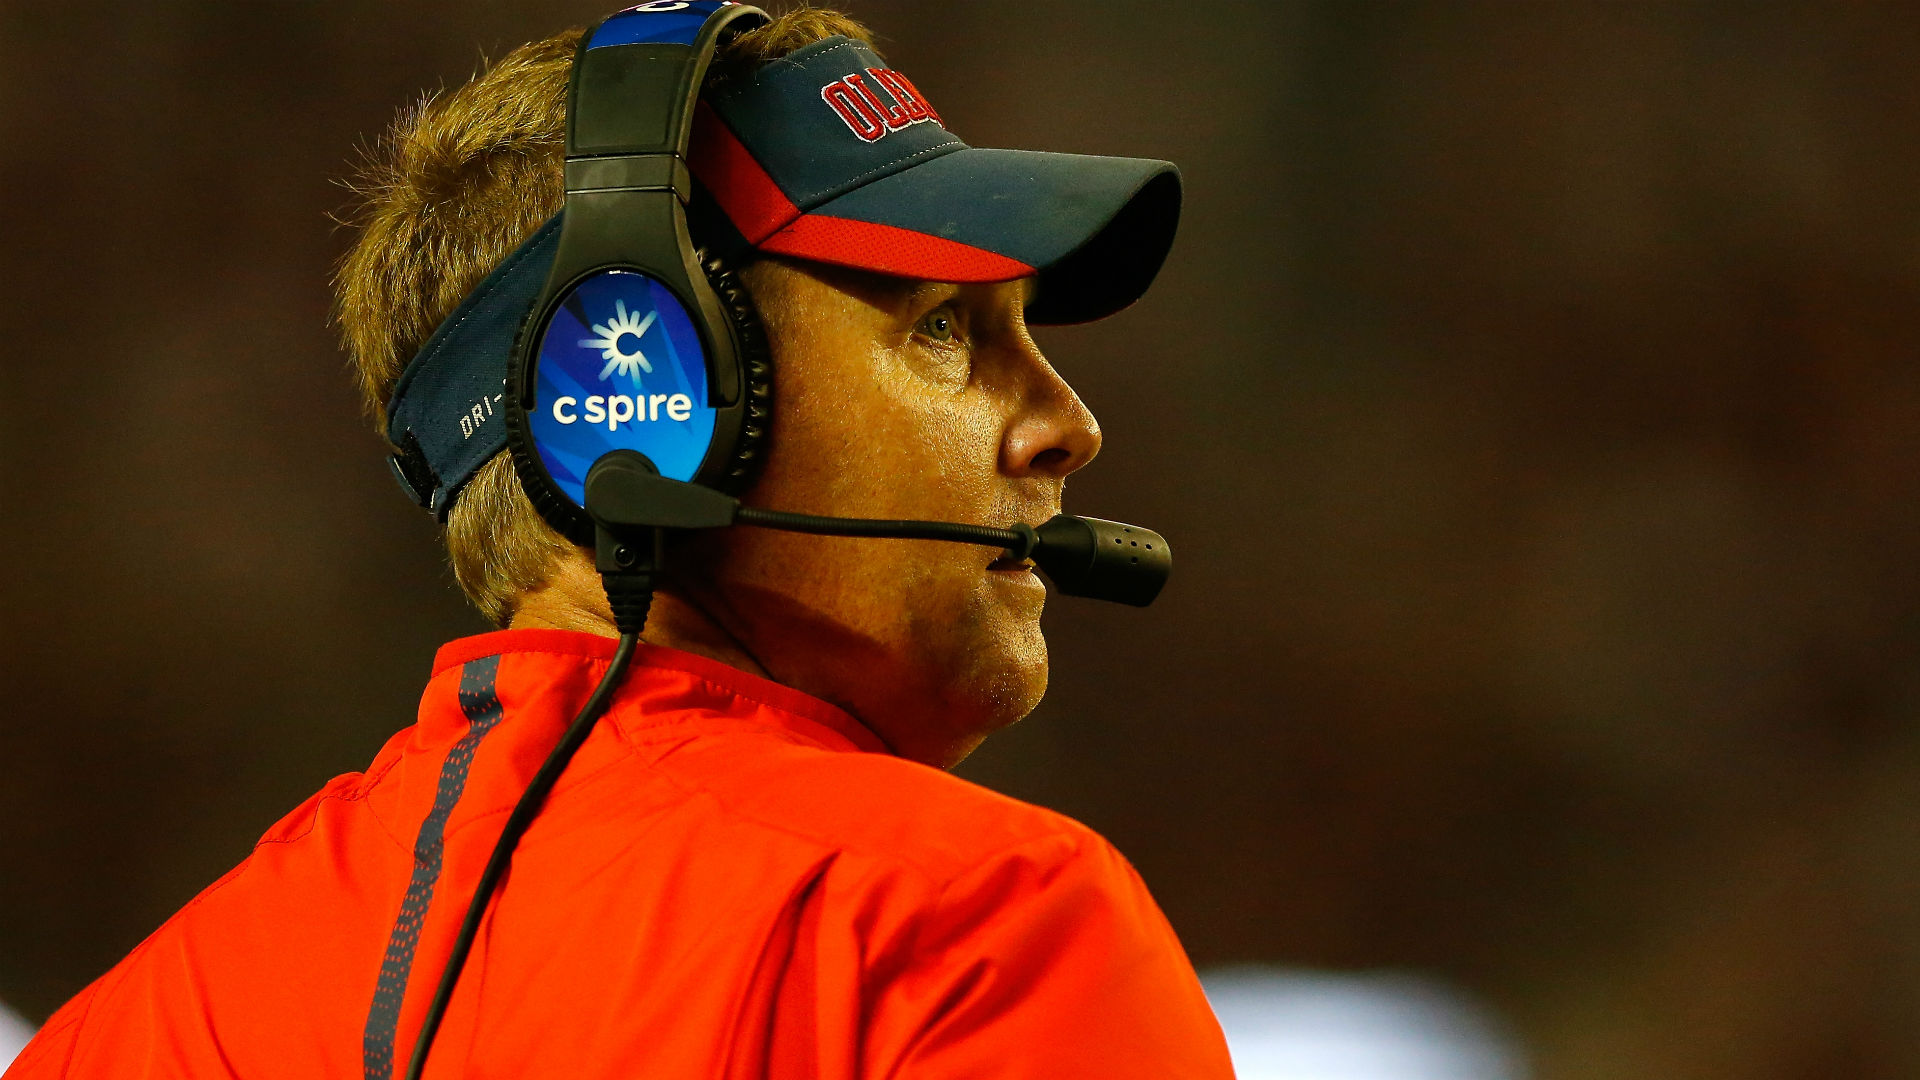 Hugh-freeze-071416-getty-ftr_h38db8556mah1ipwvexhwgrx5